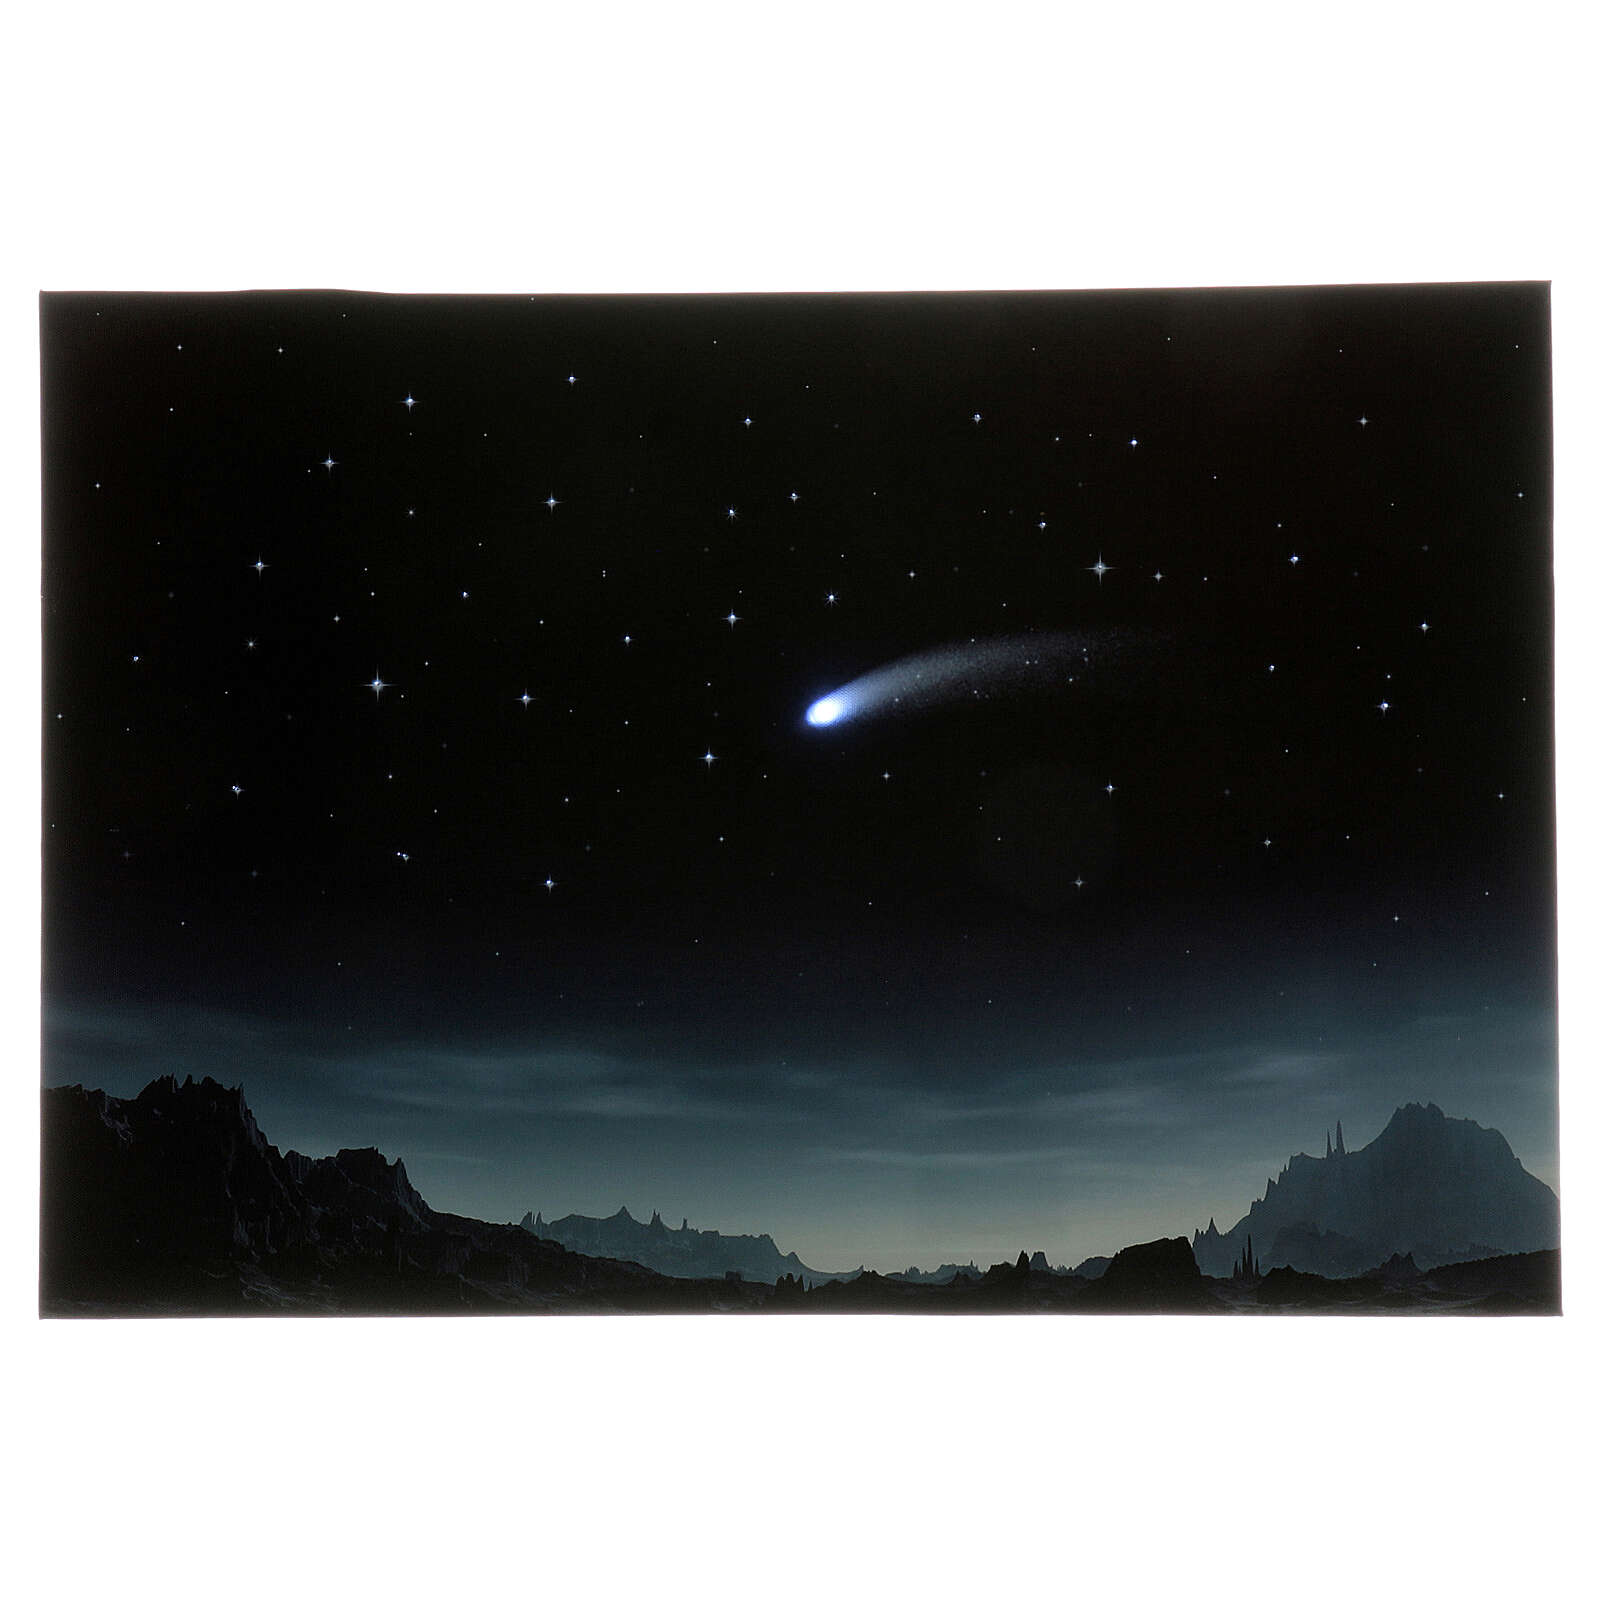 Starry night backdrop with illuminated comet, 40x60 cm 4